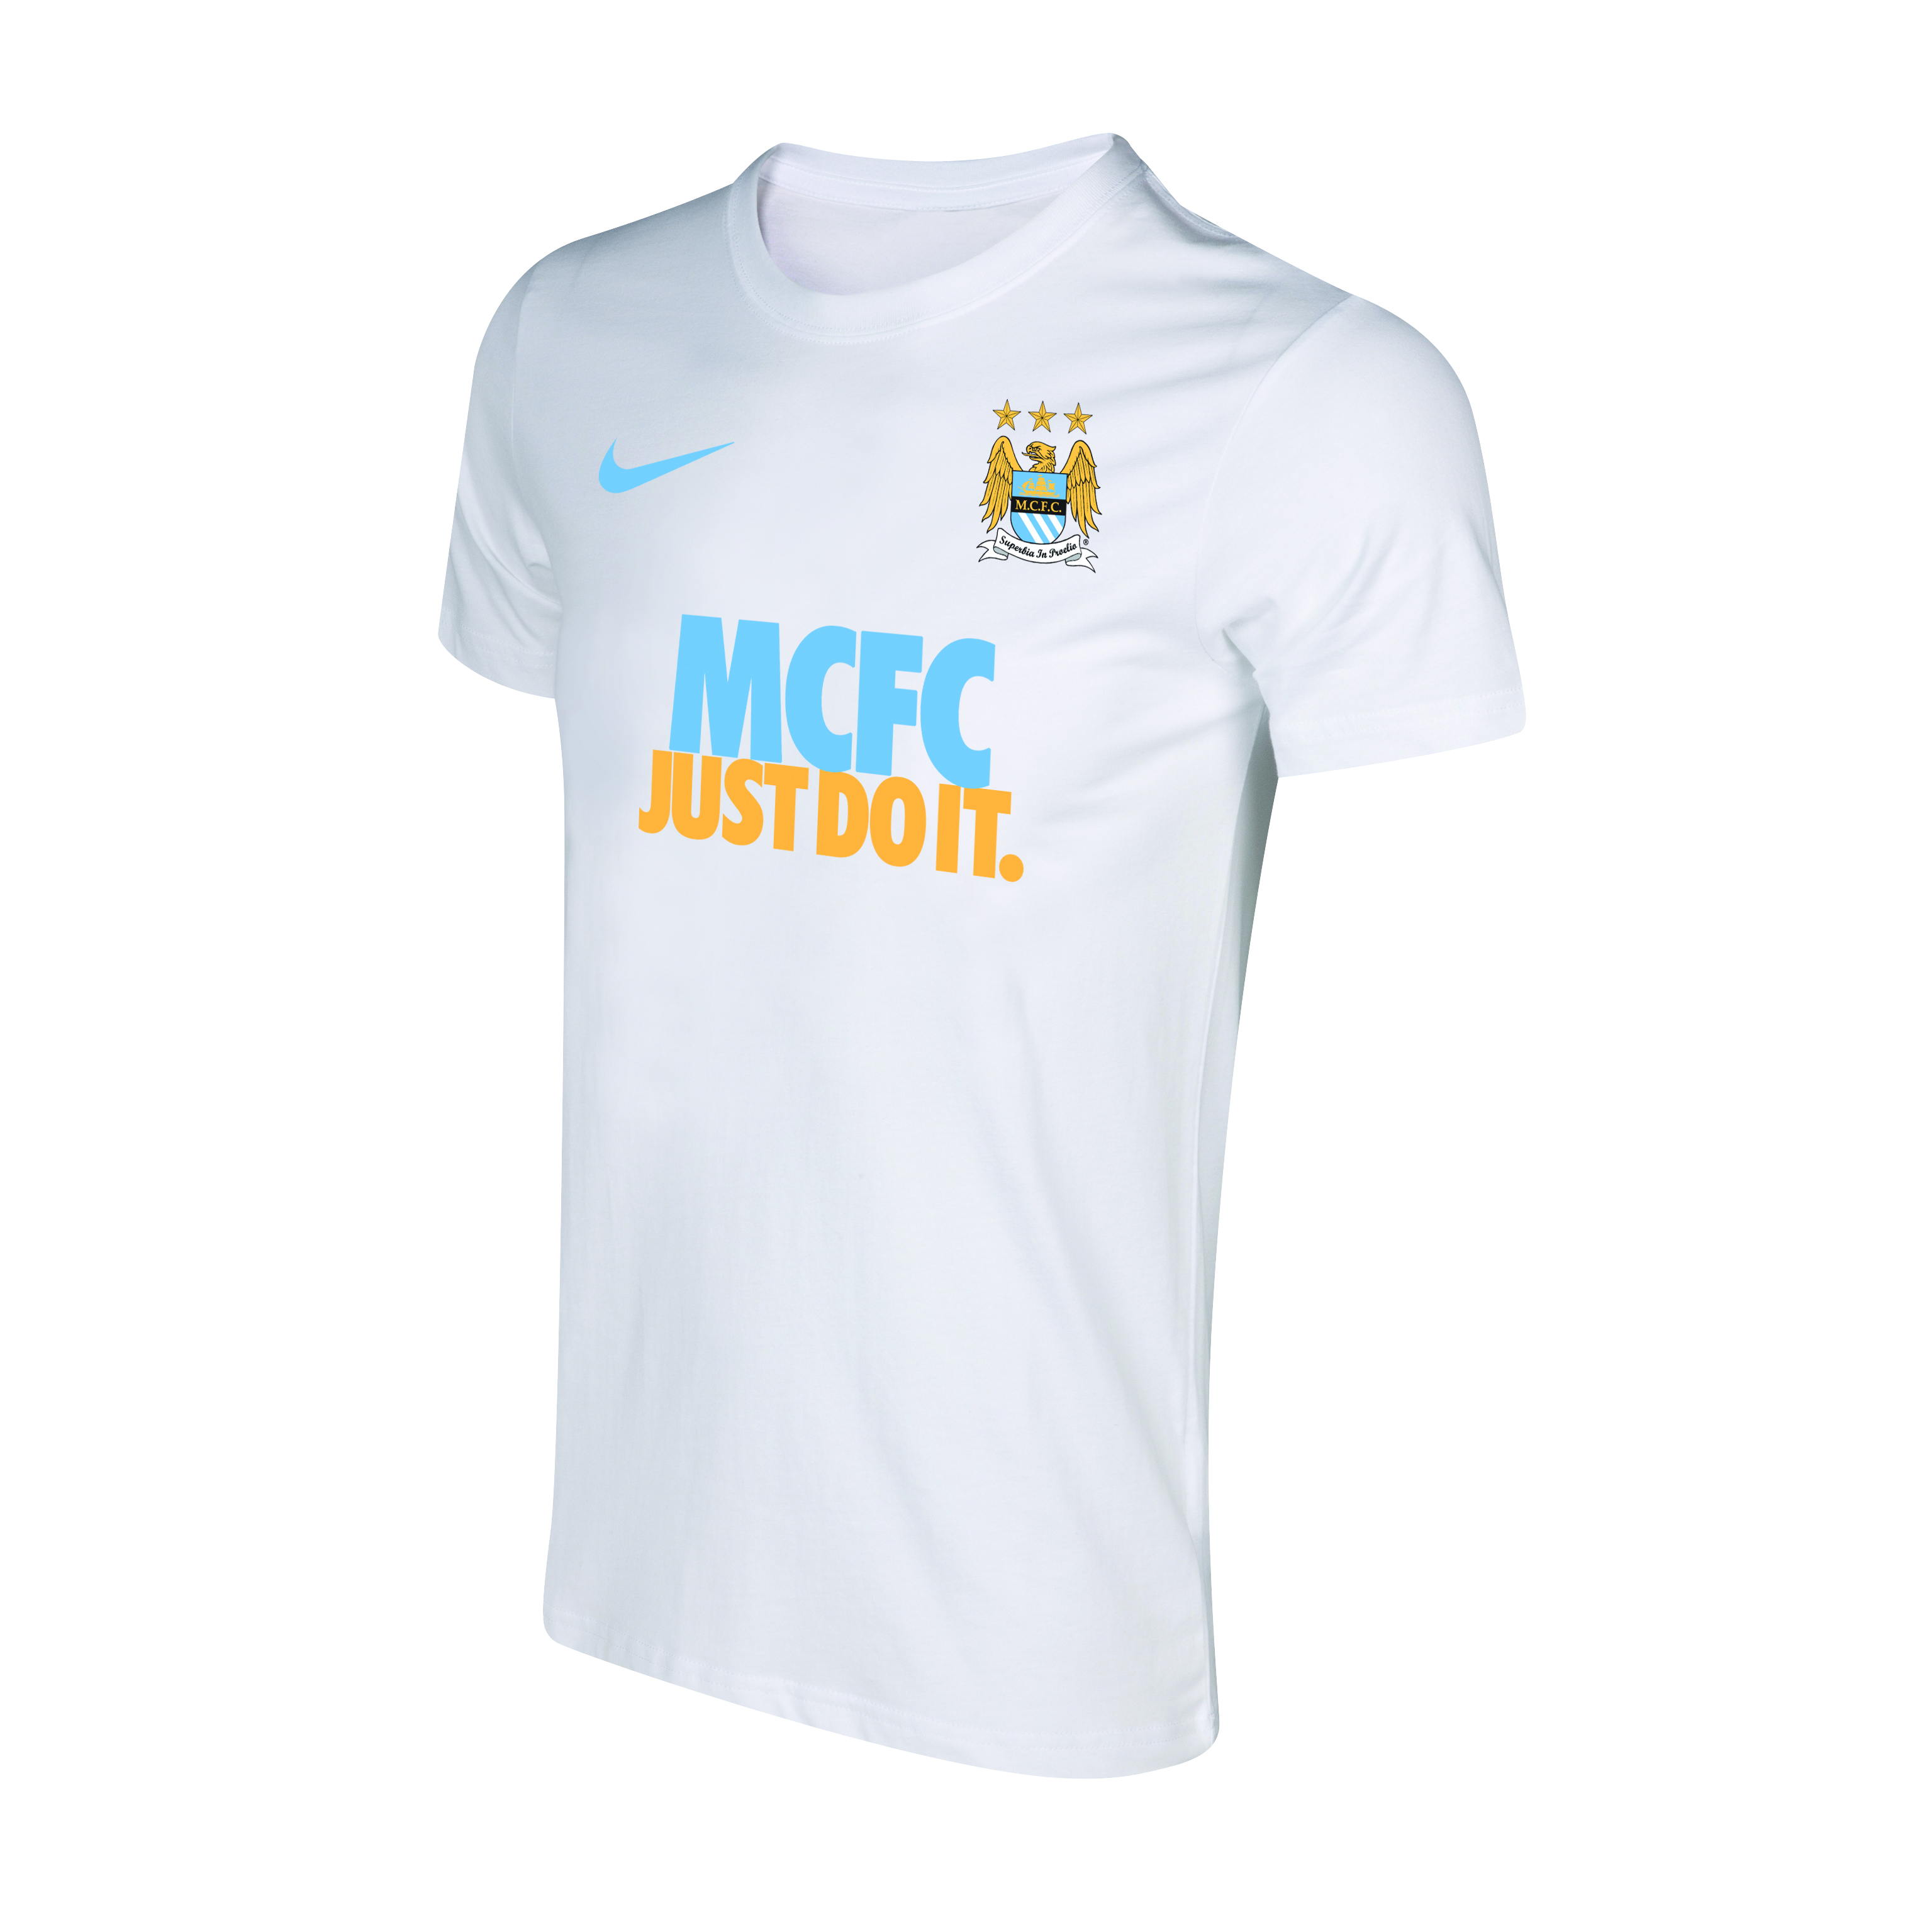 Manchester City Core Just Do It T-Shirt - Mens White